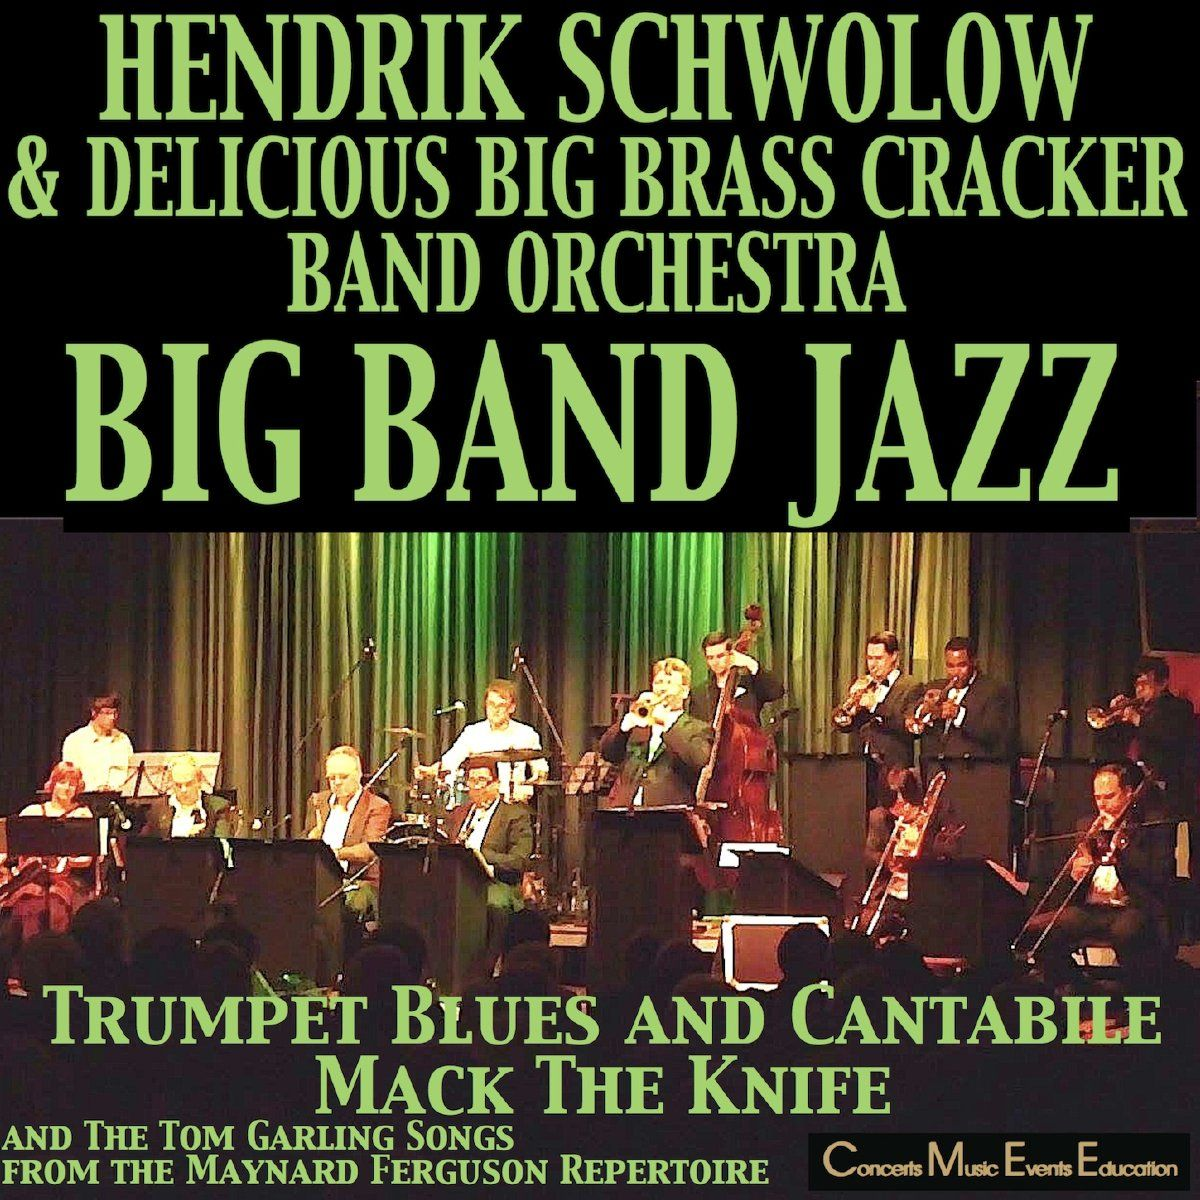 Big Band Jazz-CD Hendrik Schwolow klein